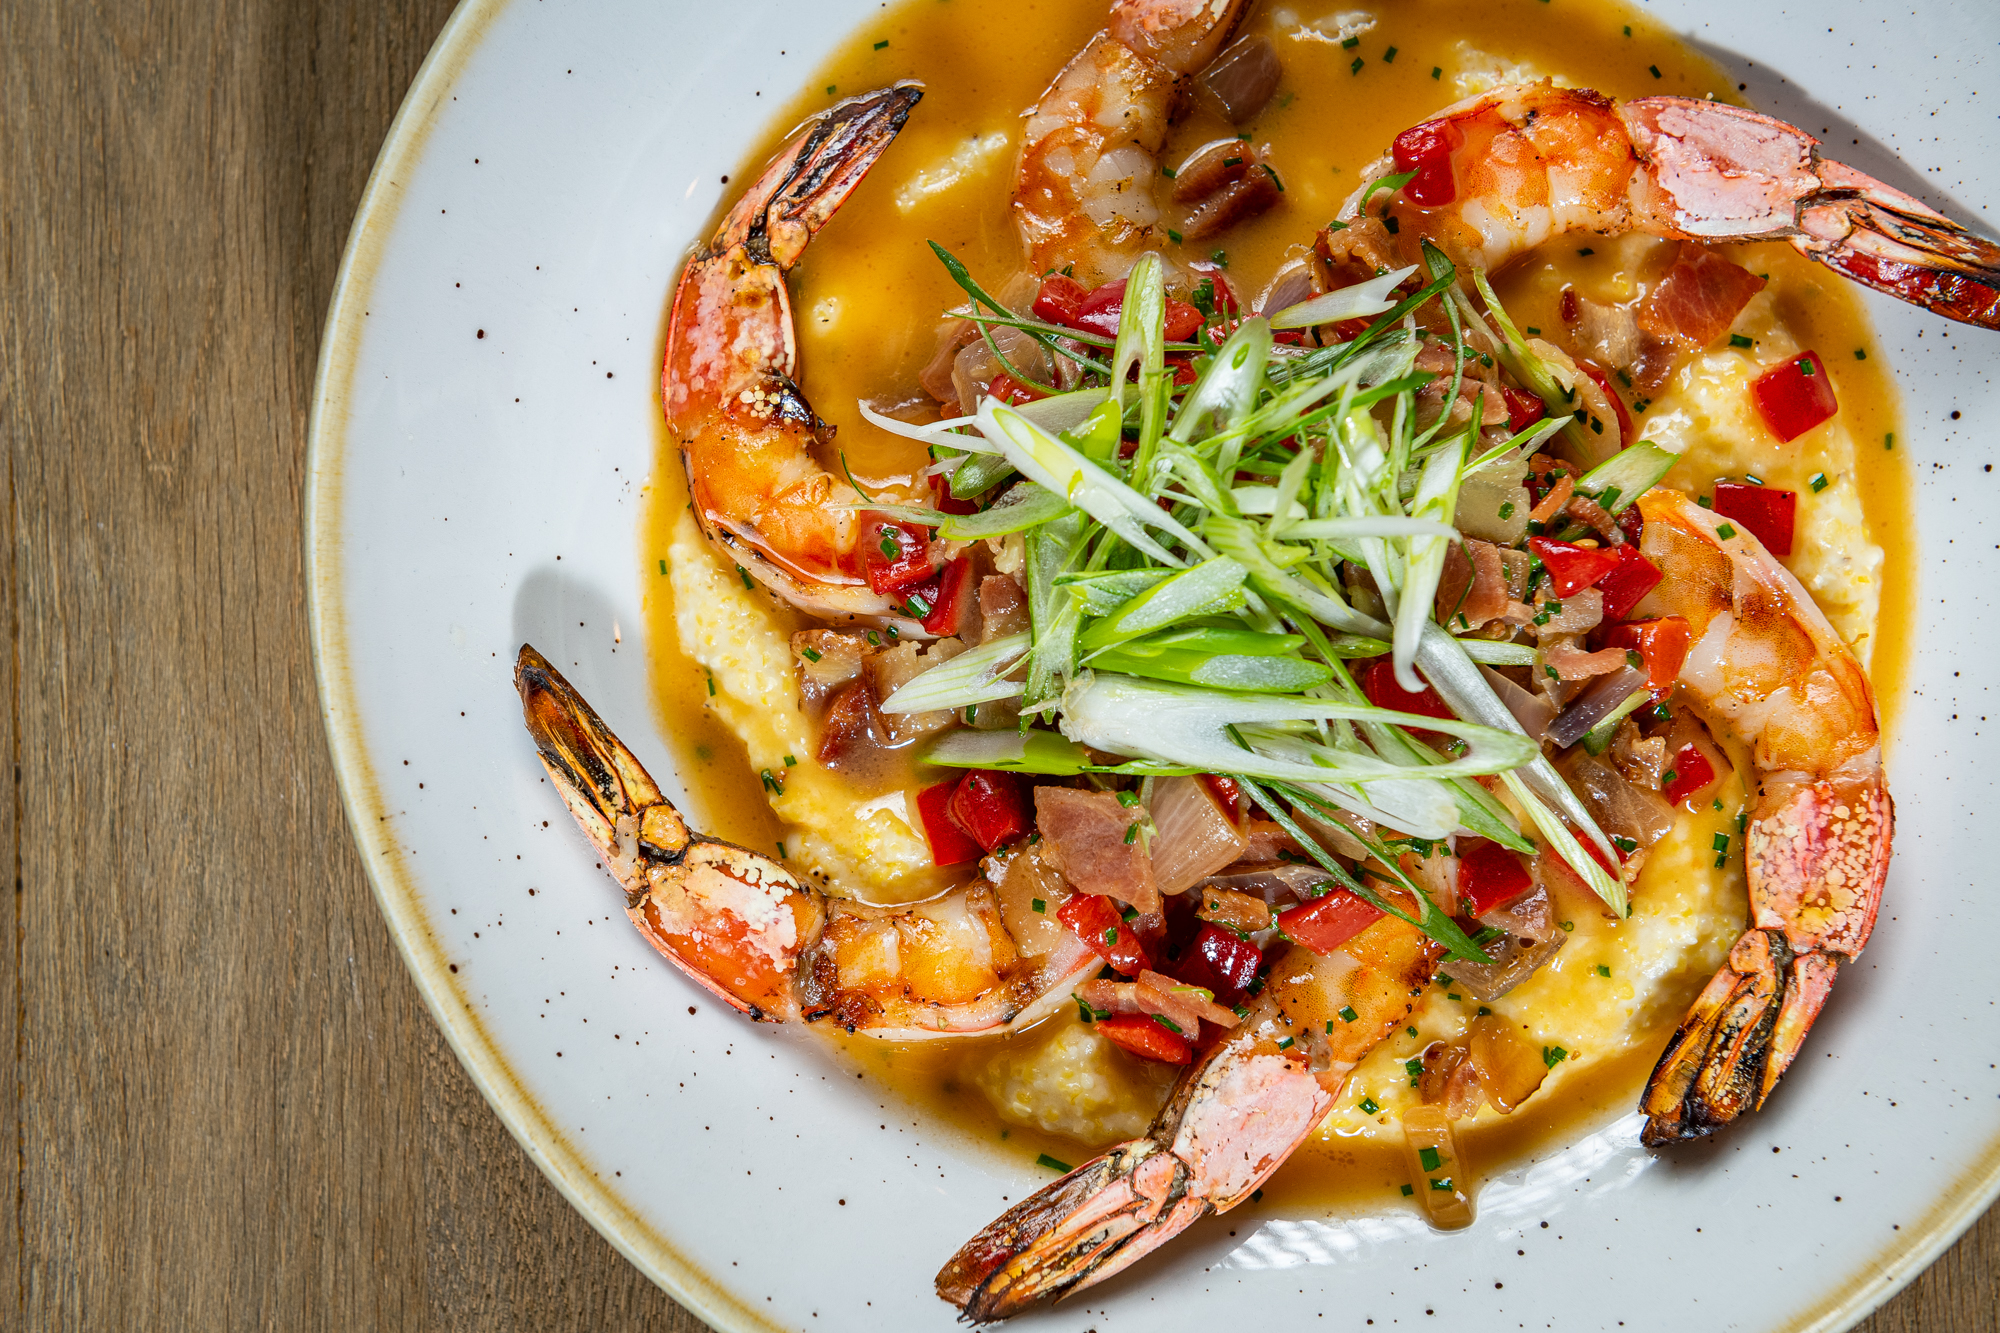 Fire-grilled shrimp with Anson Mills grits from Glover Park Grill